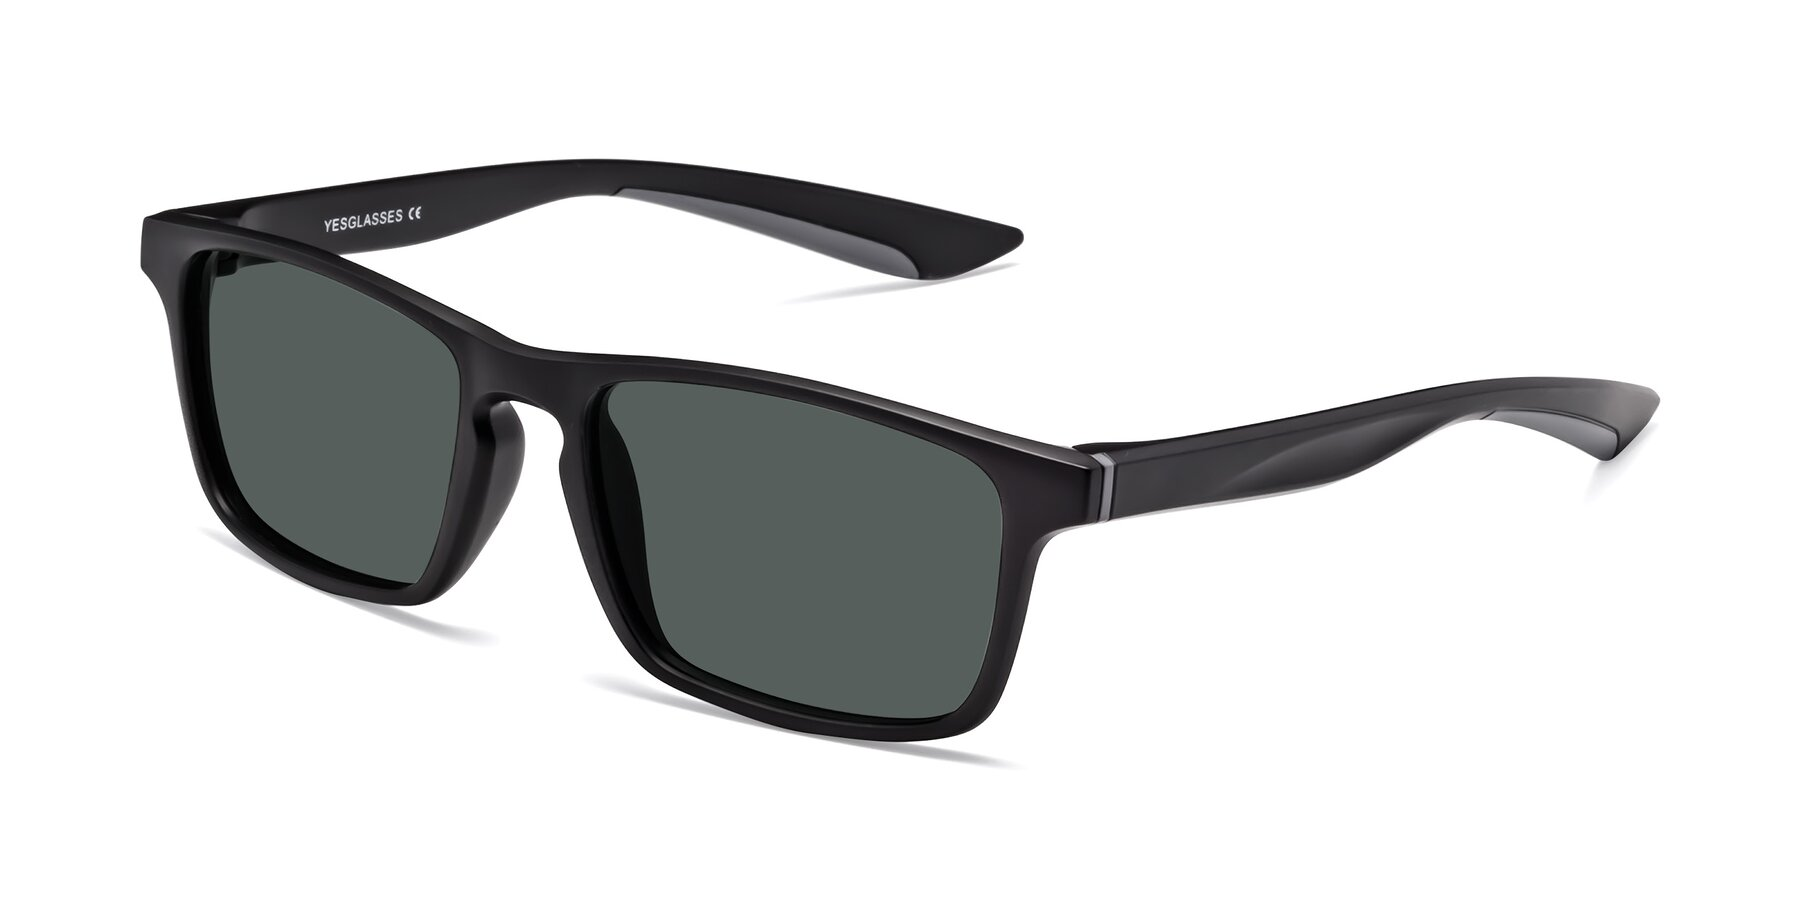 Angle of Passion in Matte Black-Gray with Gray Polarized Lenses